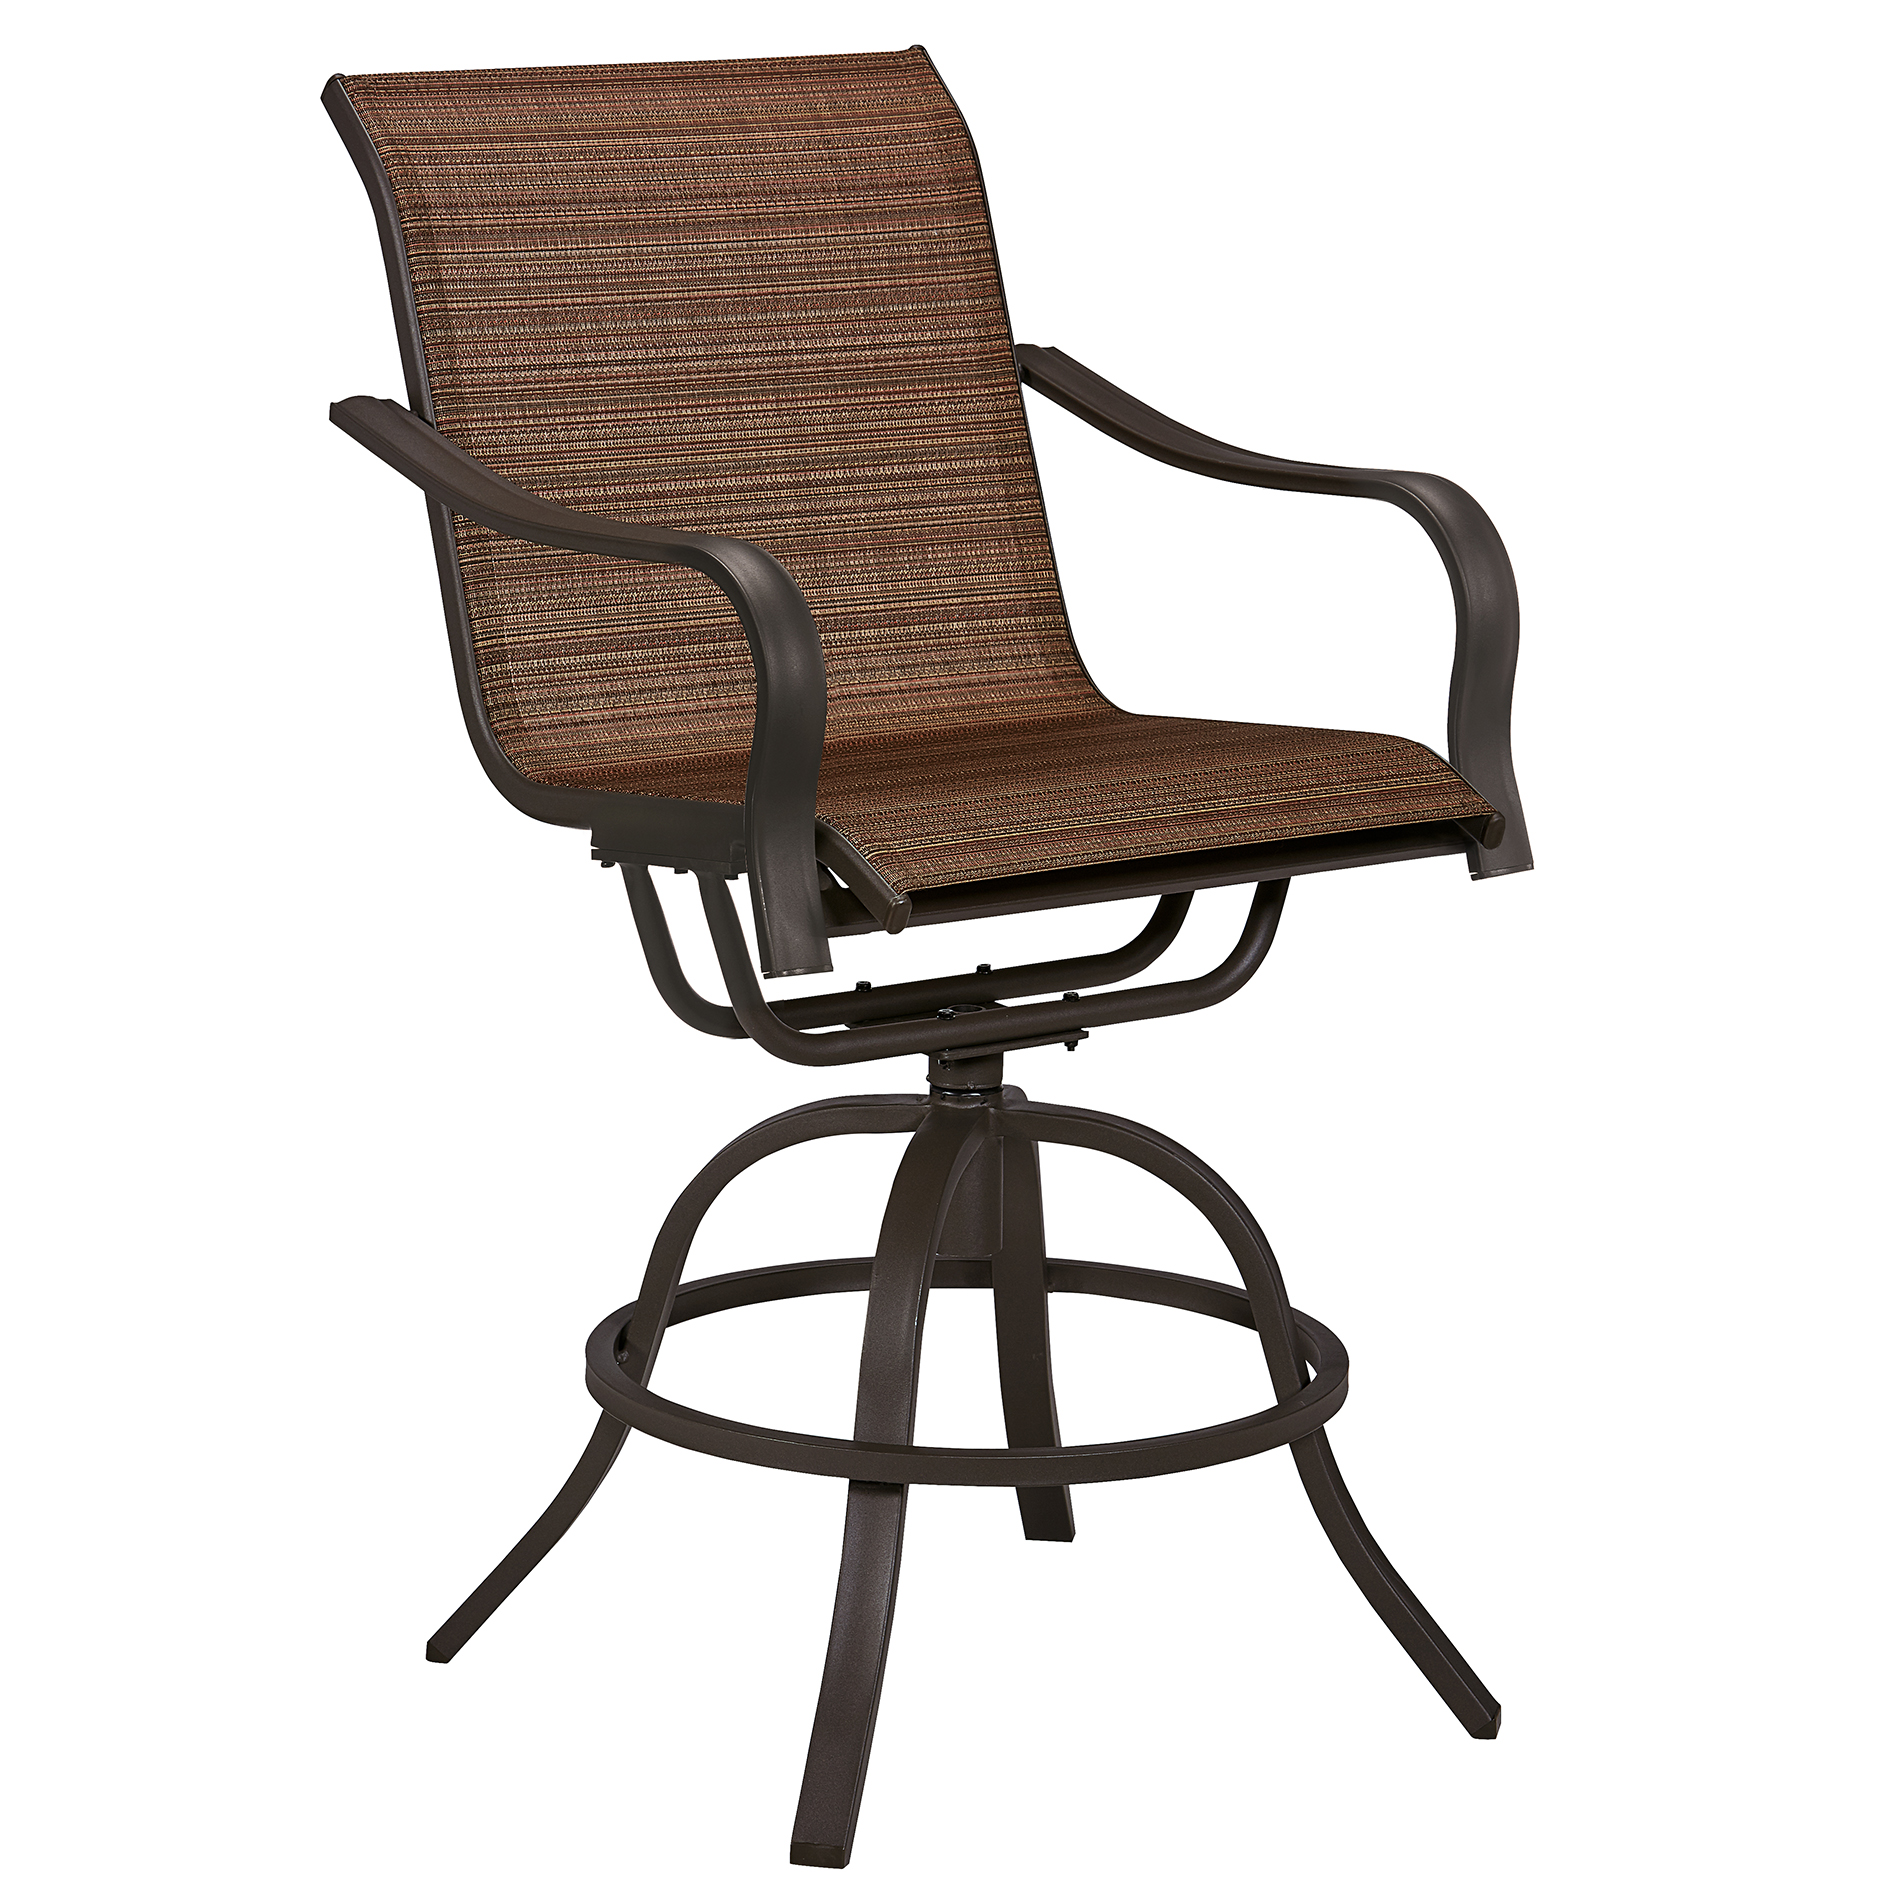 Kmart Dining Chairs Jaclyn Smith Marion 4 High Dining Chairs Outdoor Living